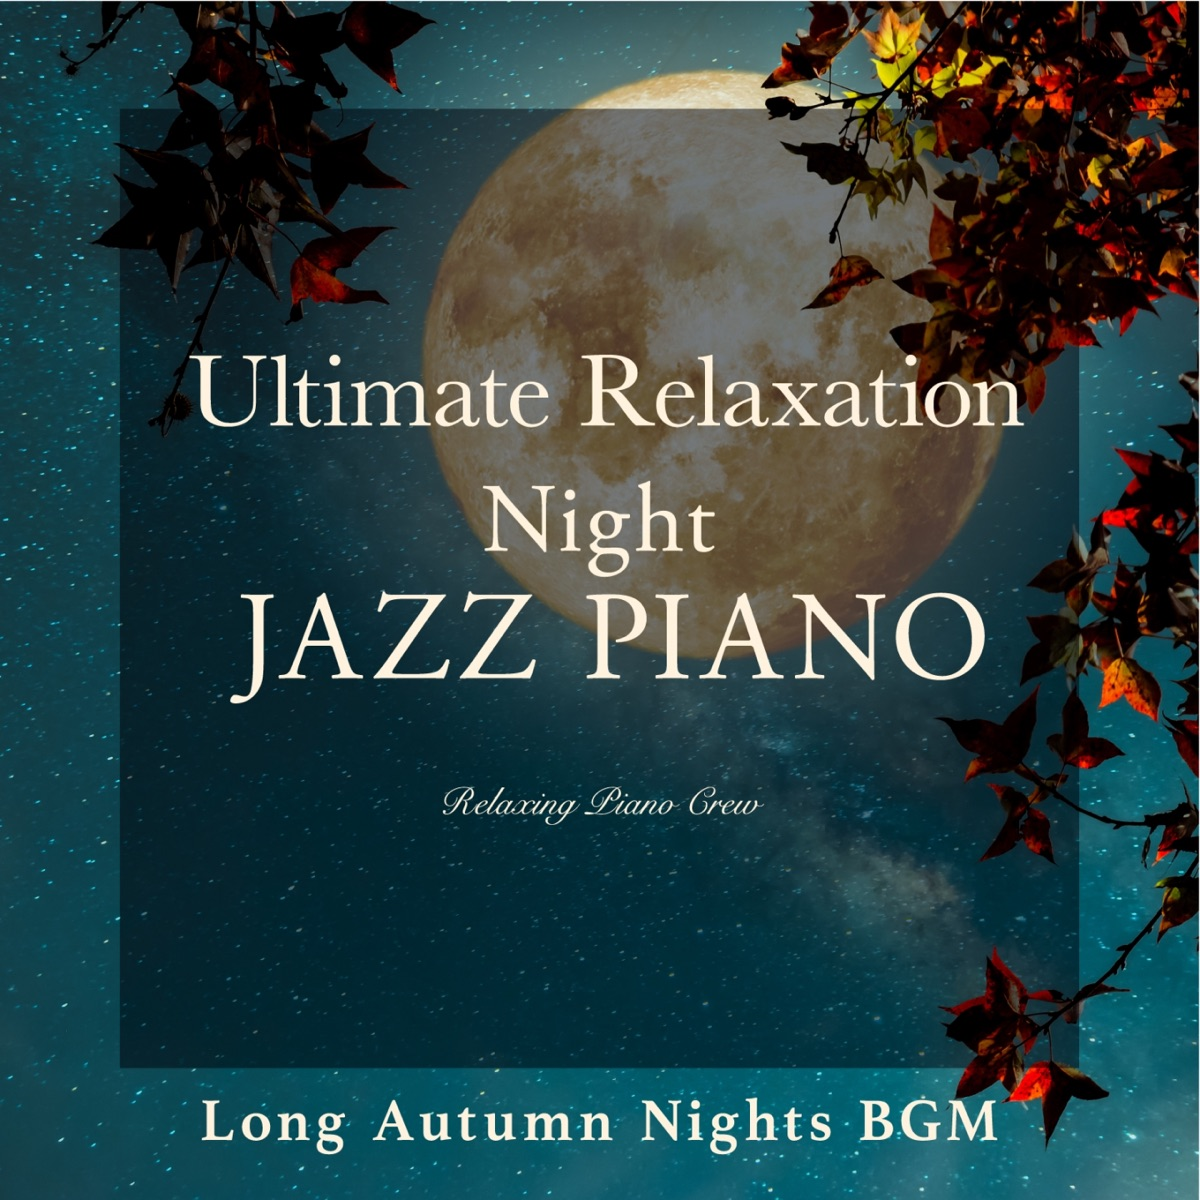 Ultimate Relaxation Night Jazz Piano - Long Autumn Nights BGM Relaxing Piano Crew CD cover